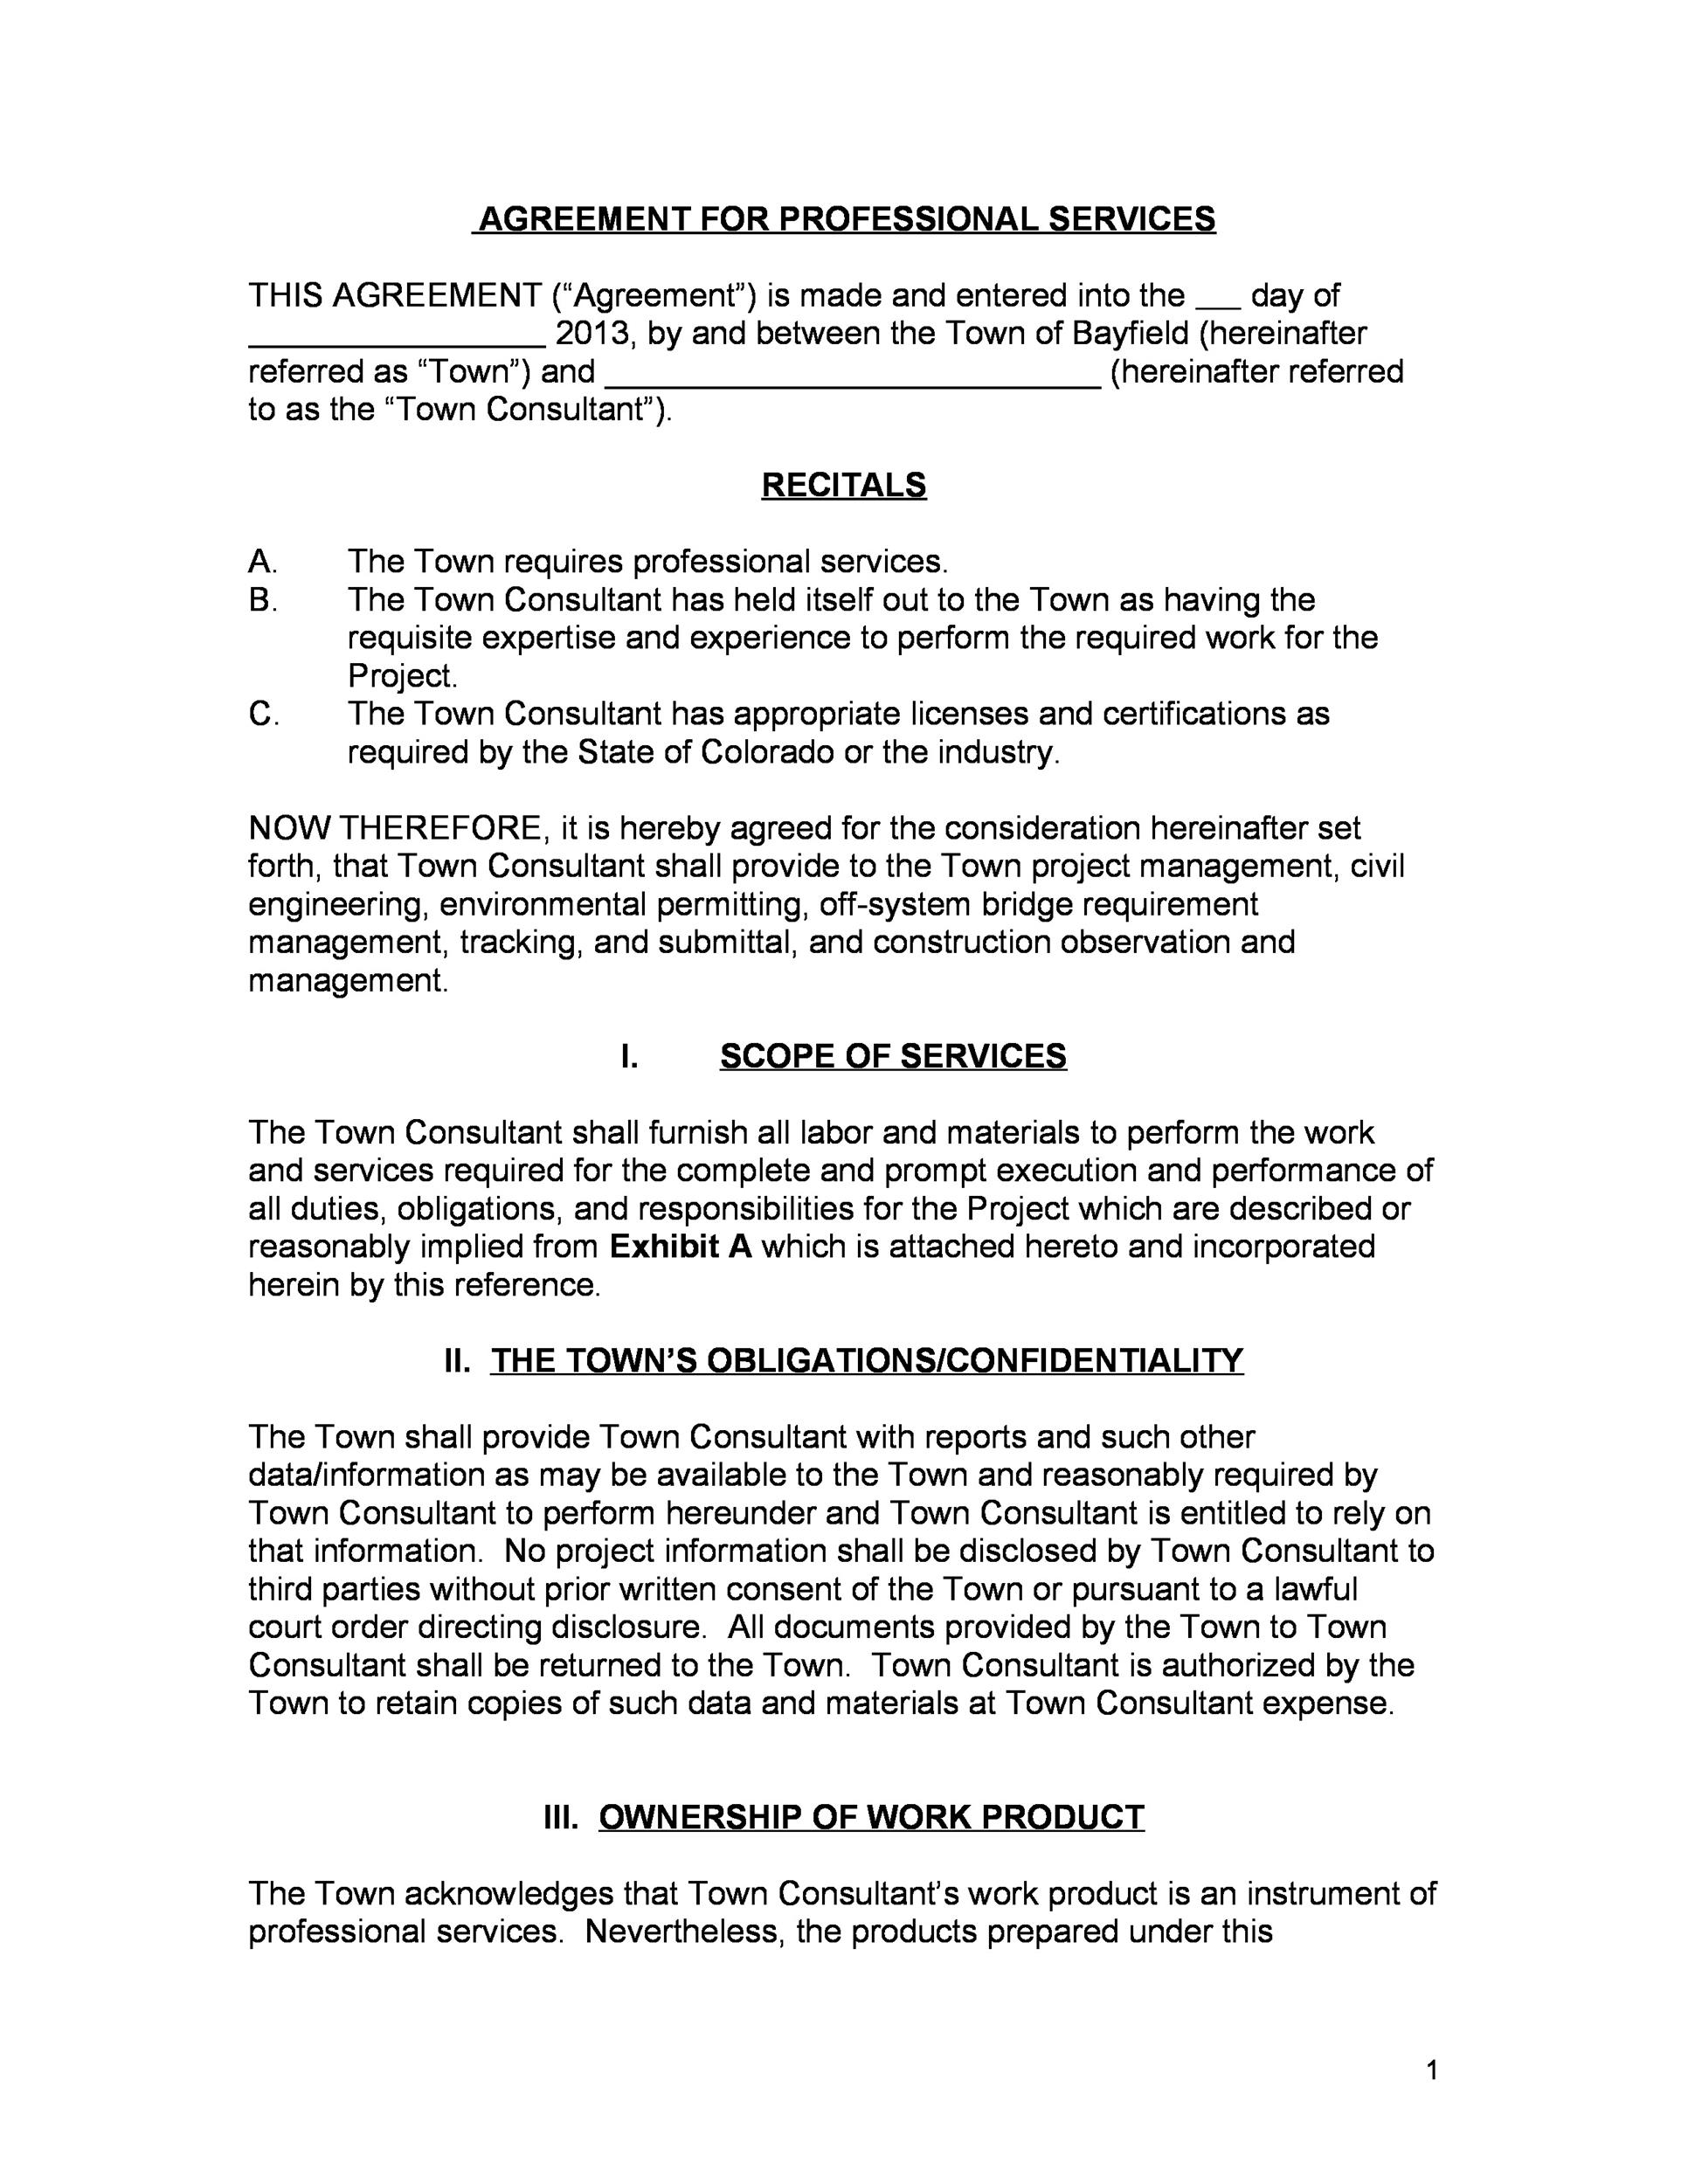 Stunning Professional Services Agreement Template Ideas  Best